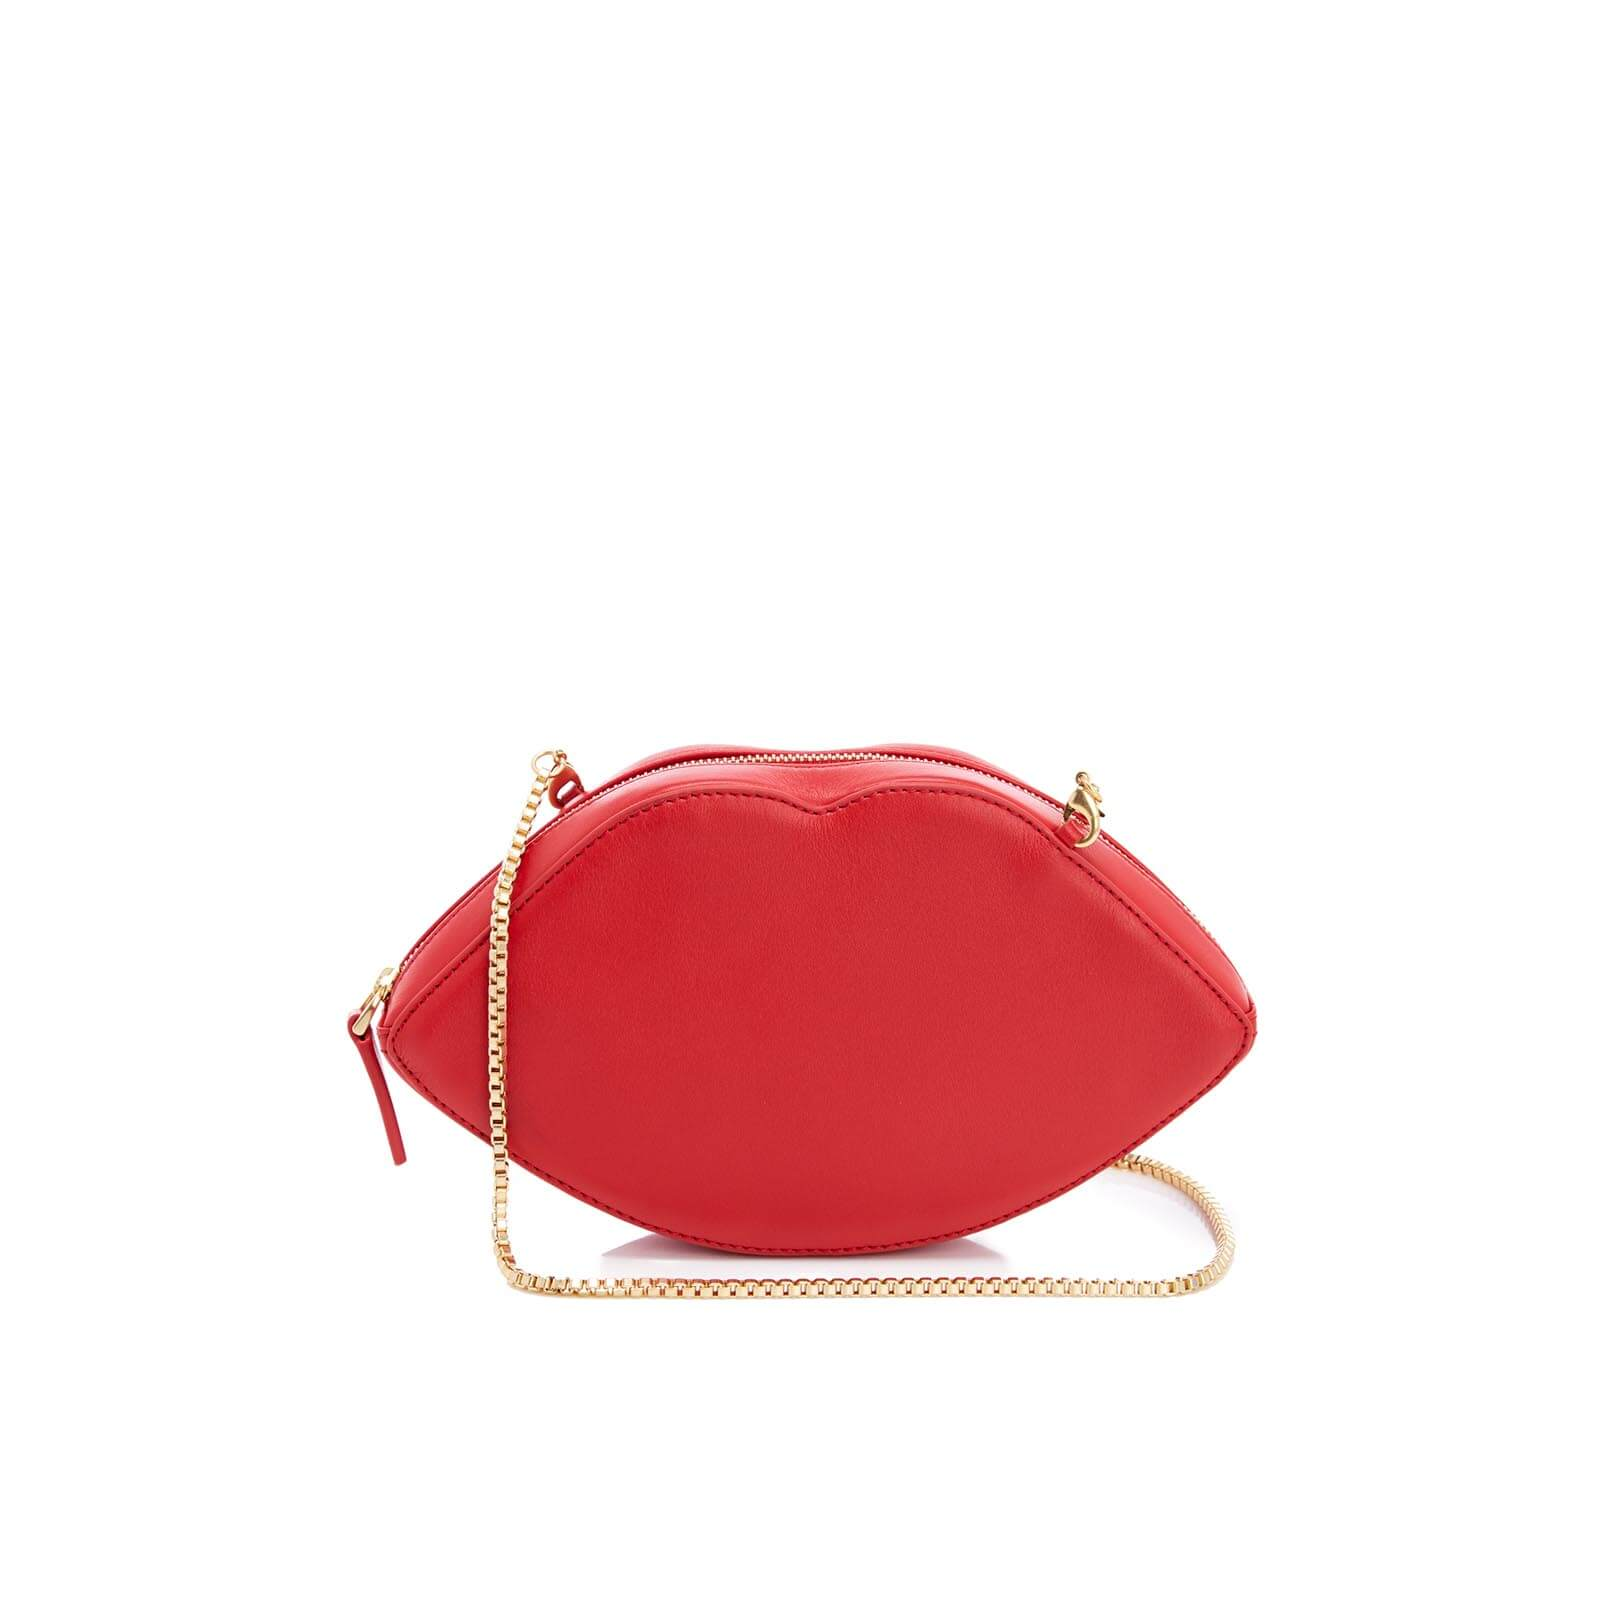 bf7bf366d Lulu Guinness Women's Smooth Leather Lips Cross Body Bag - Classic Red -  Free UK Delivery over £50